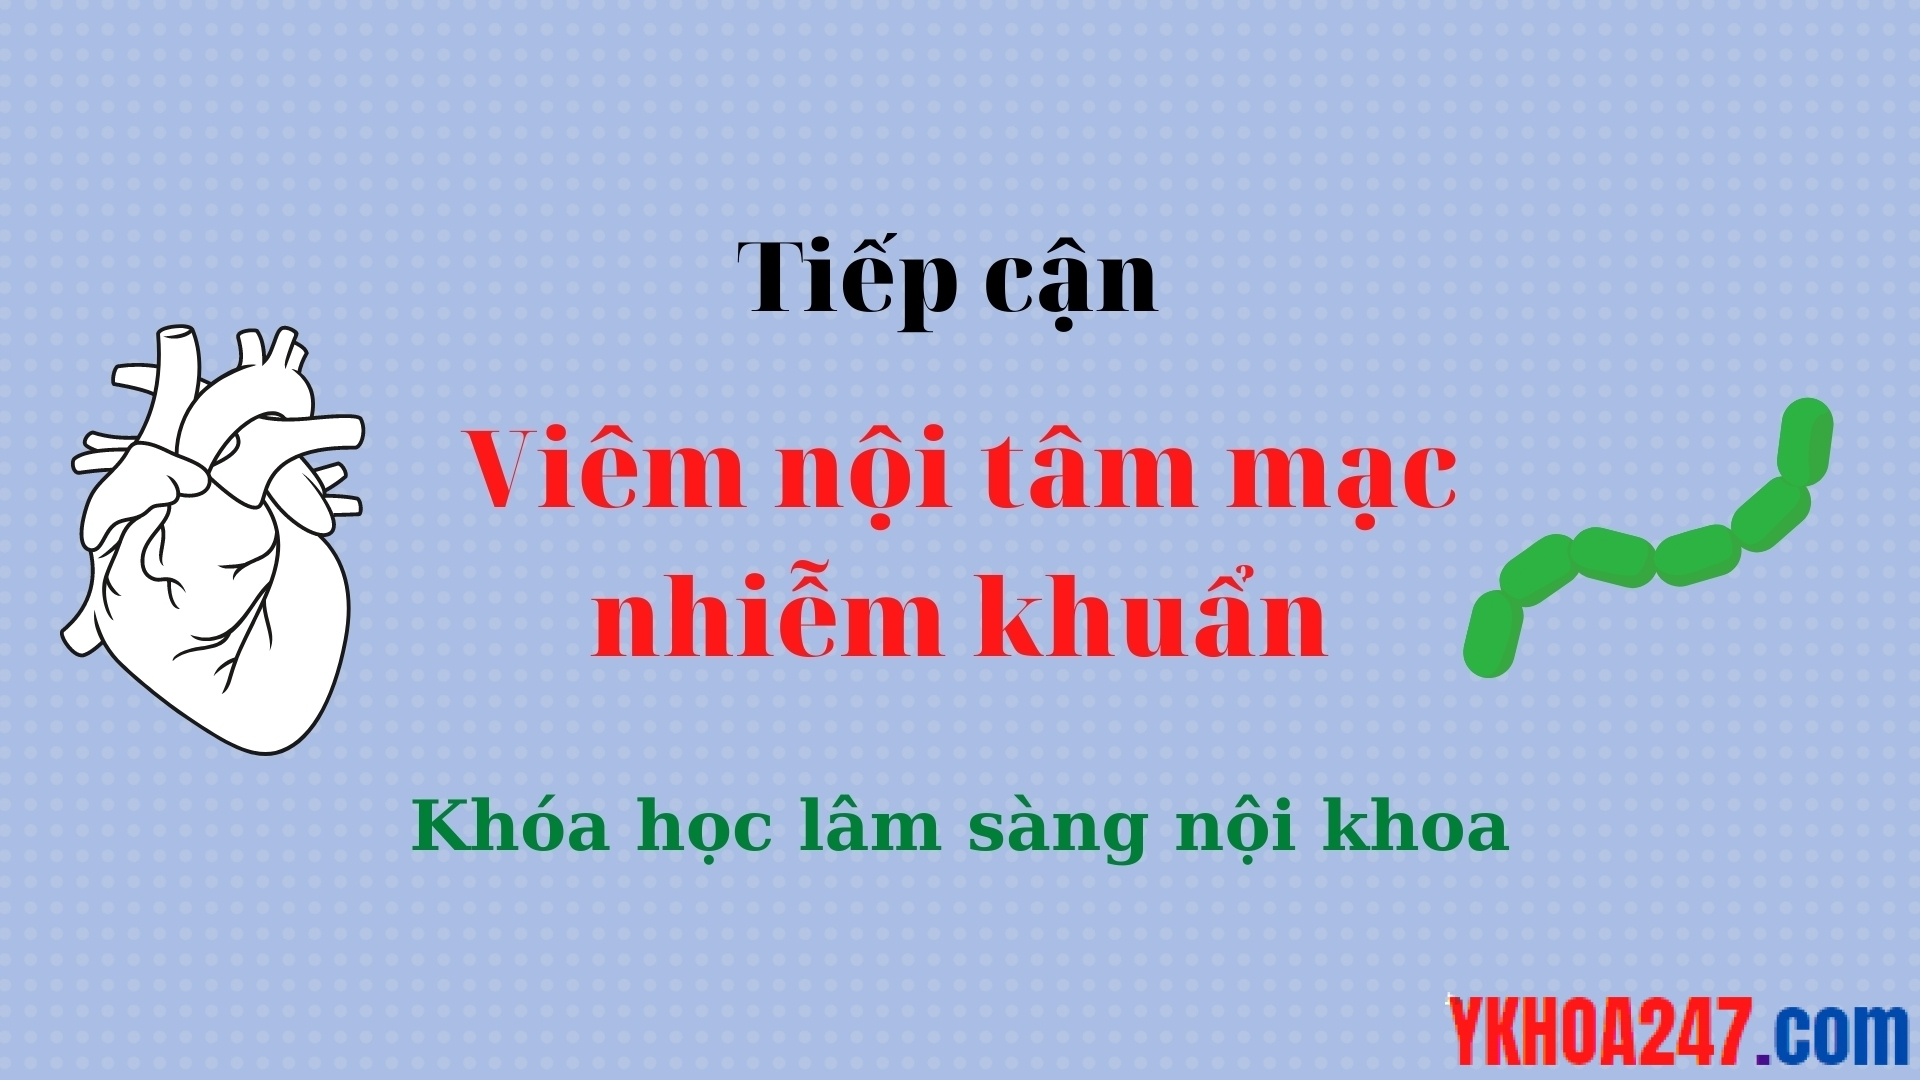 Tiep can 3